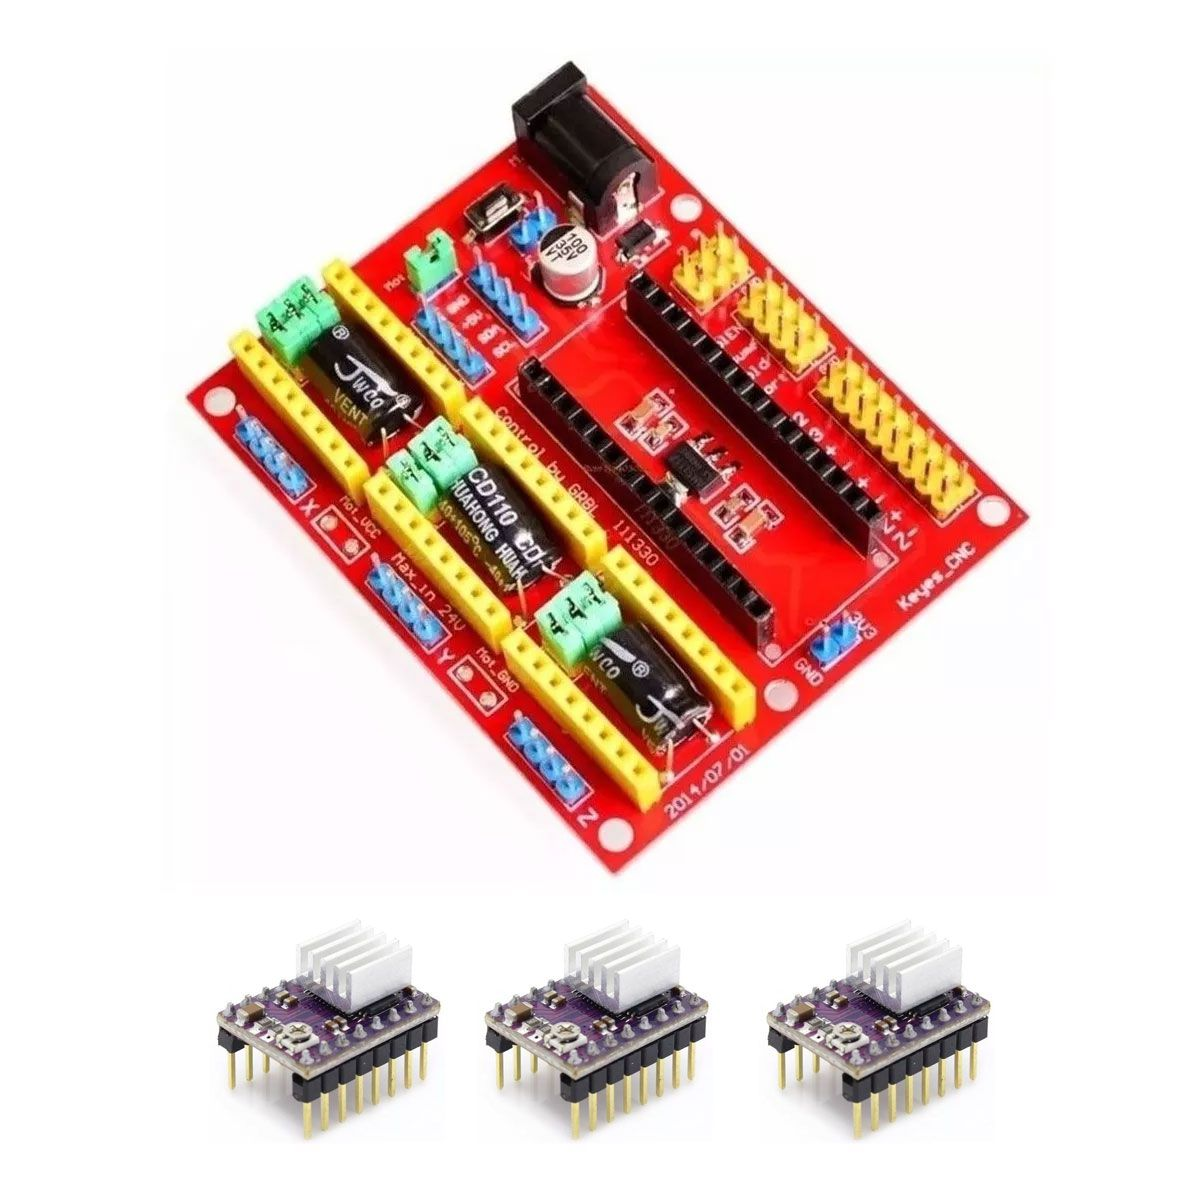 Kit Cnc Shield V4 Nano + 3x Drivers DRV8825 + 3x Dissipadores